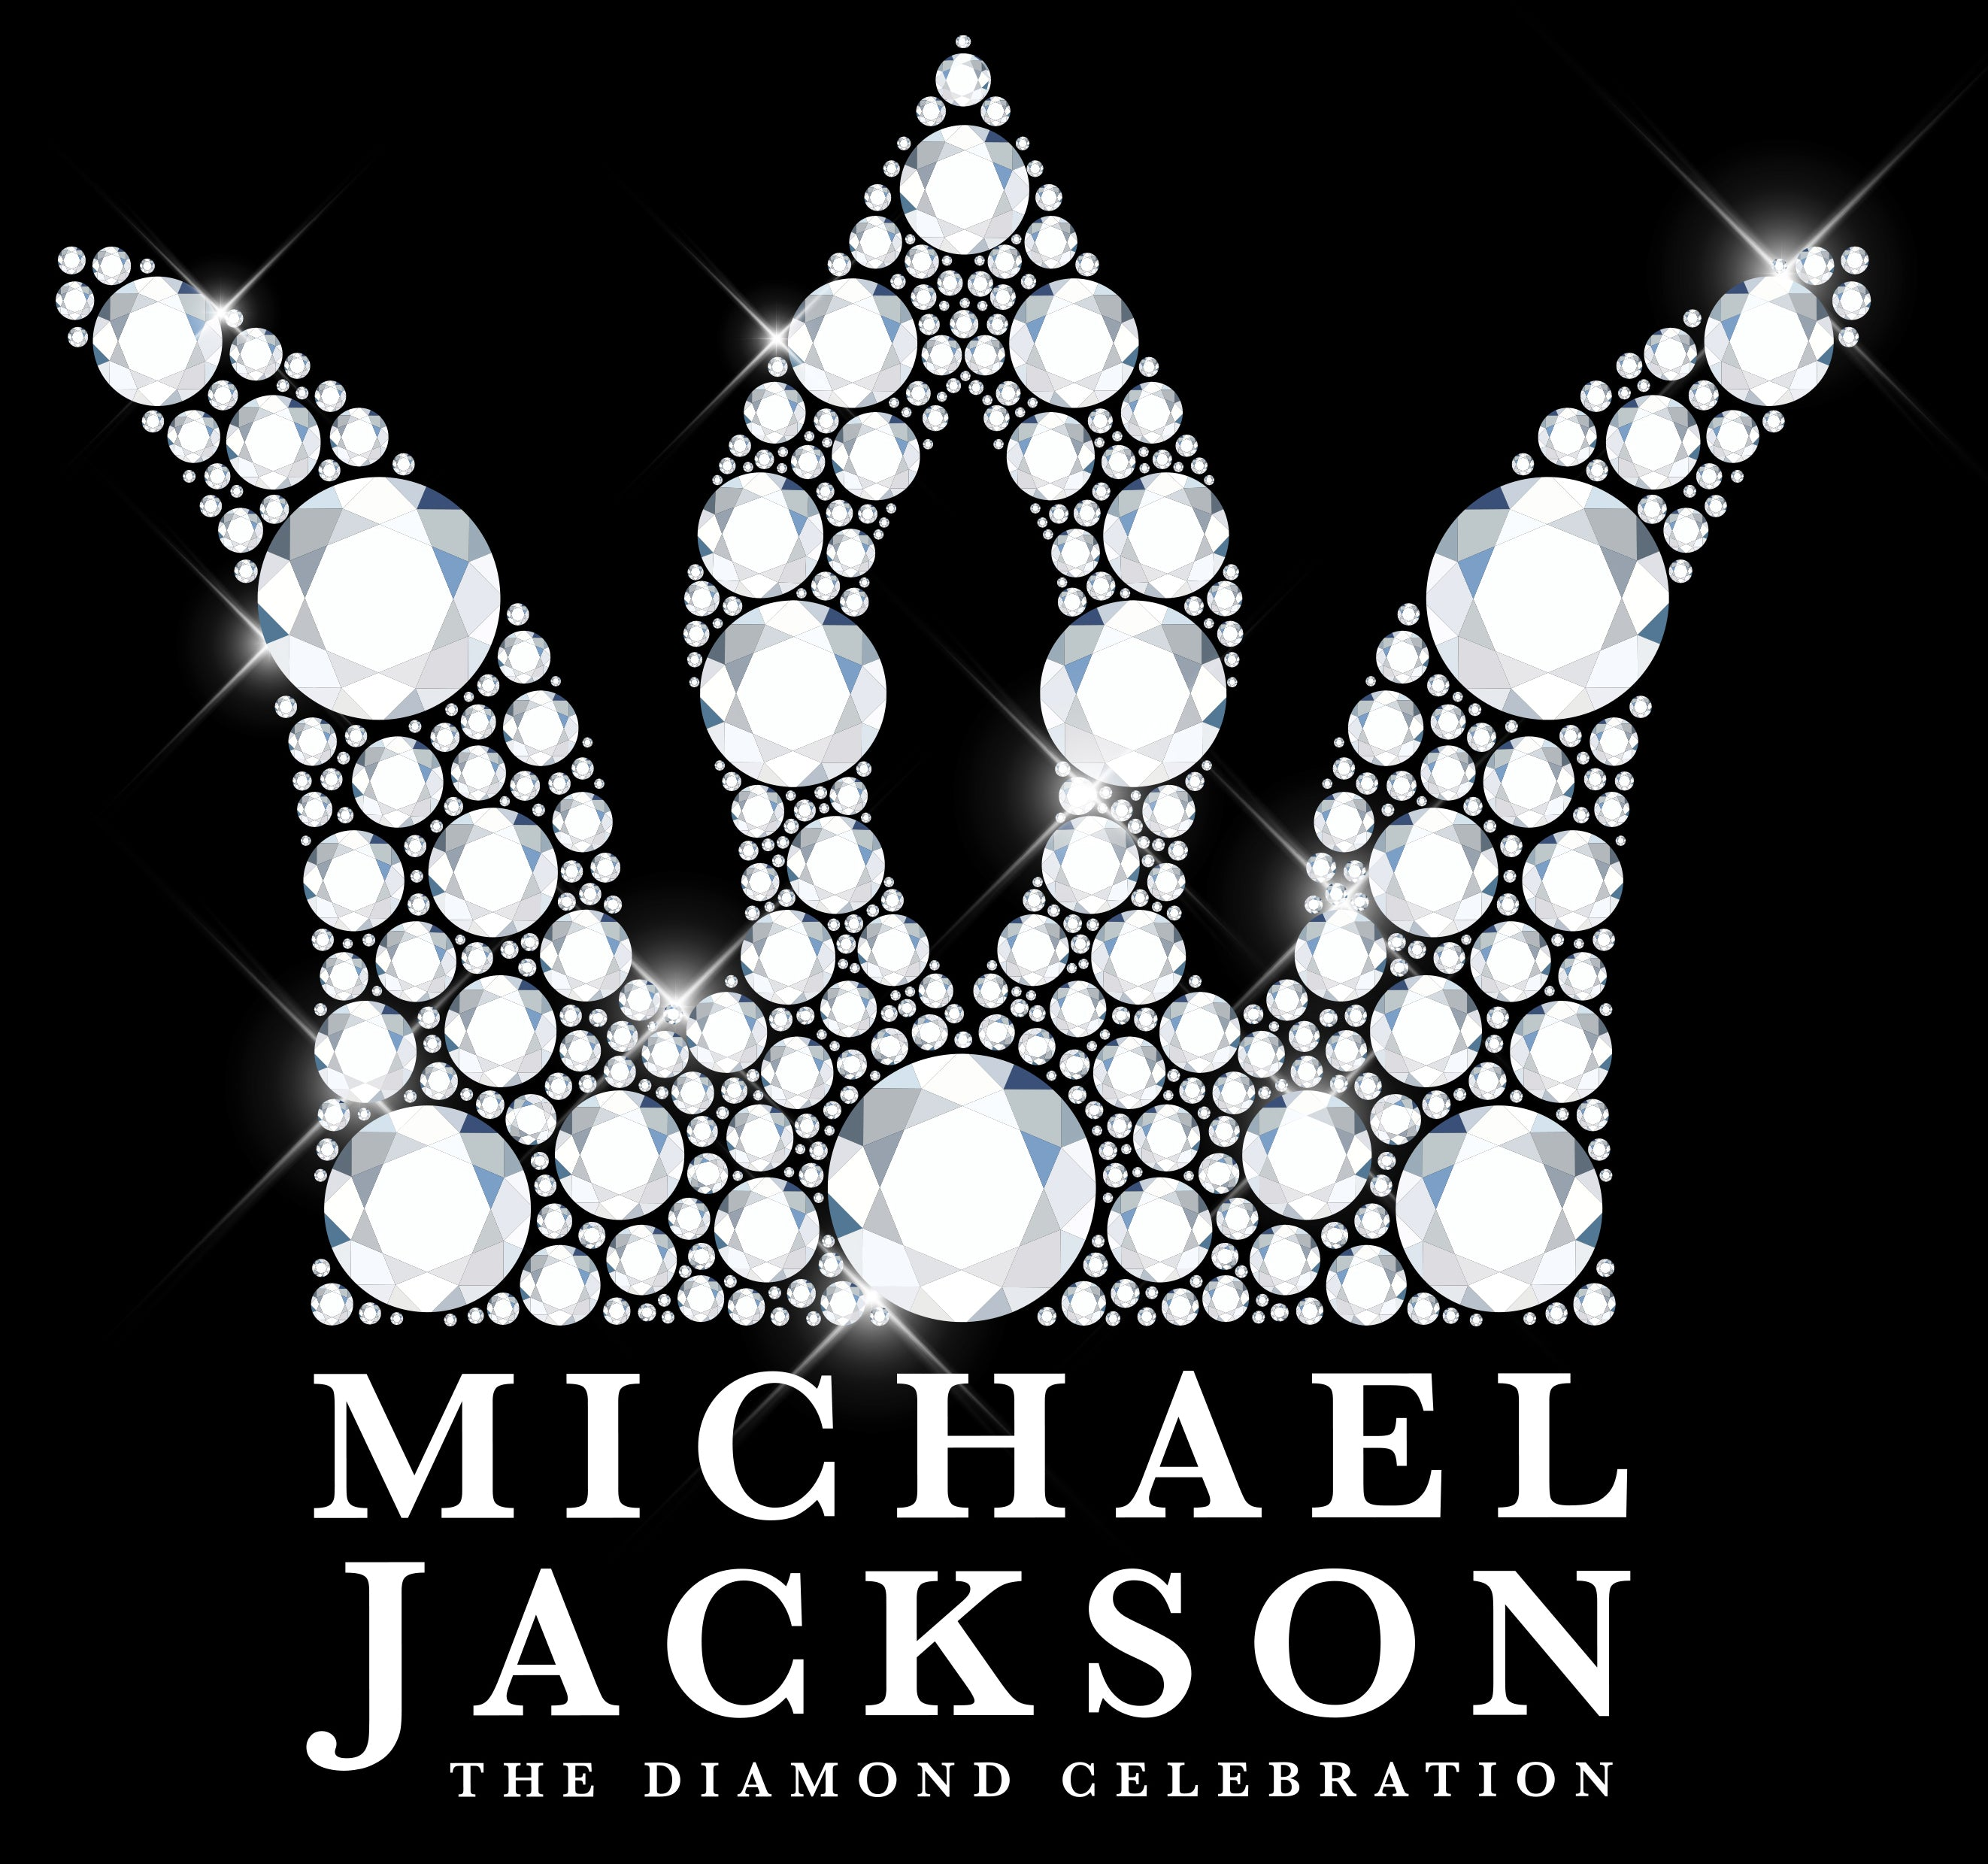 Michael Jackson's Diamond Celebration